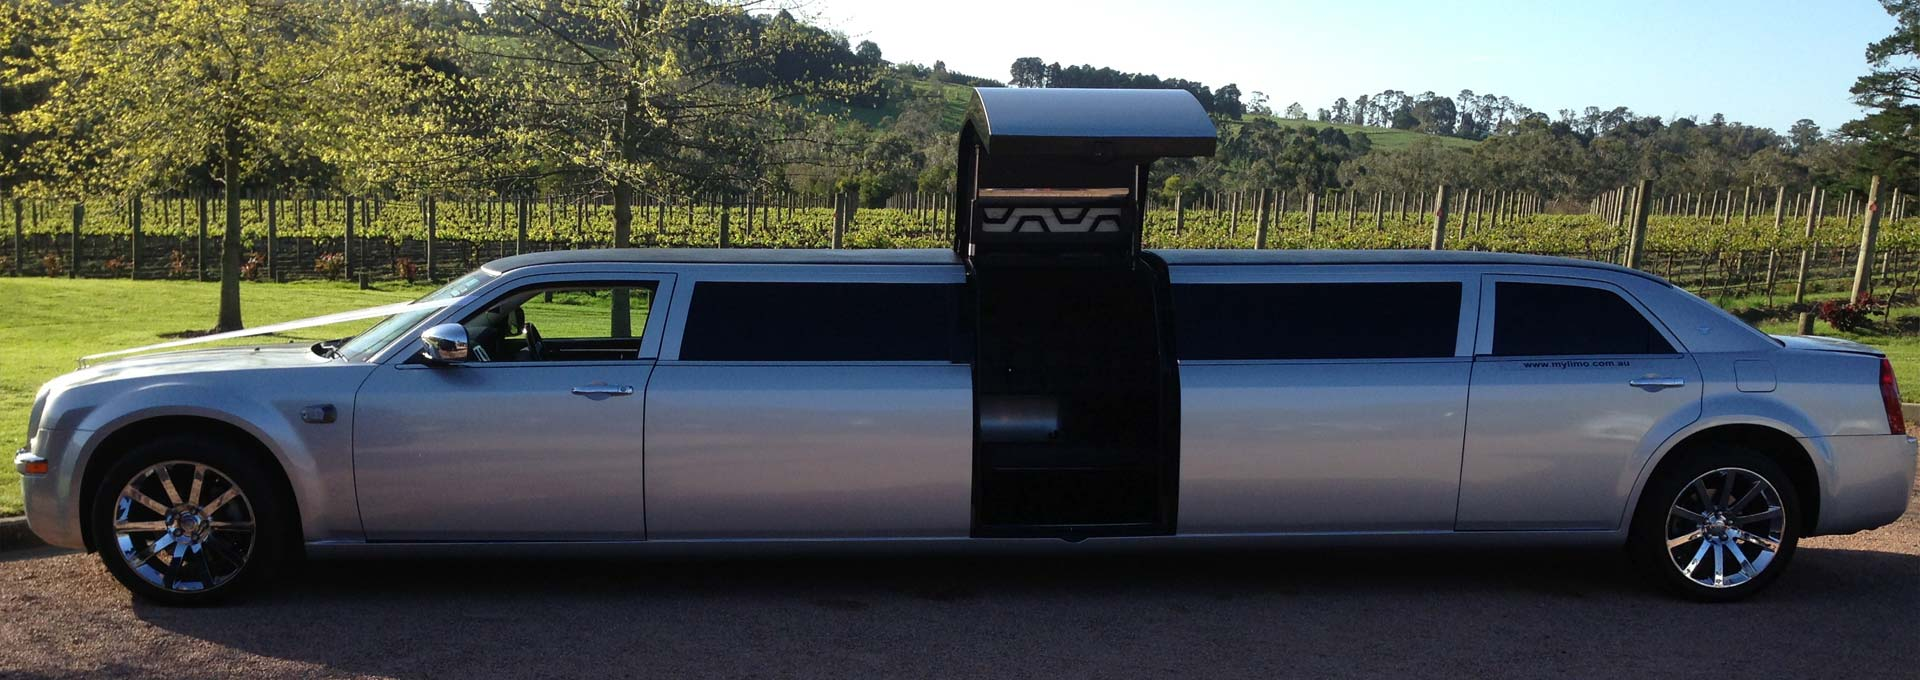 slide-winery-tours-limo-hire